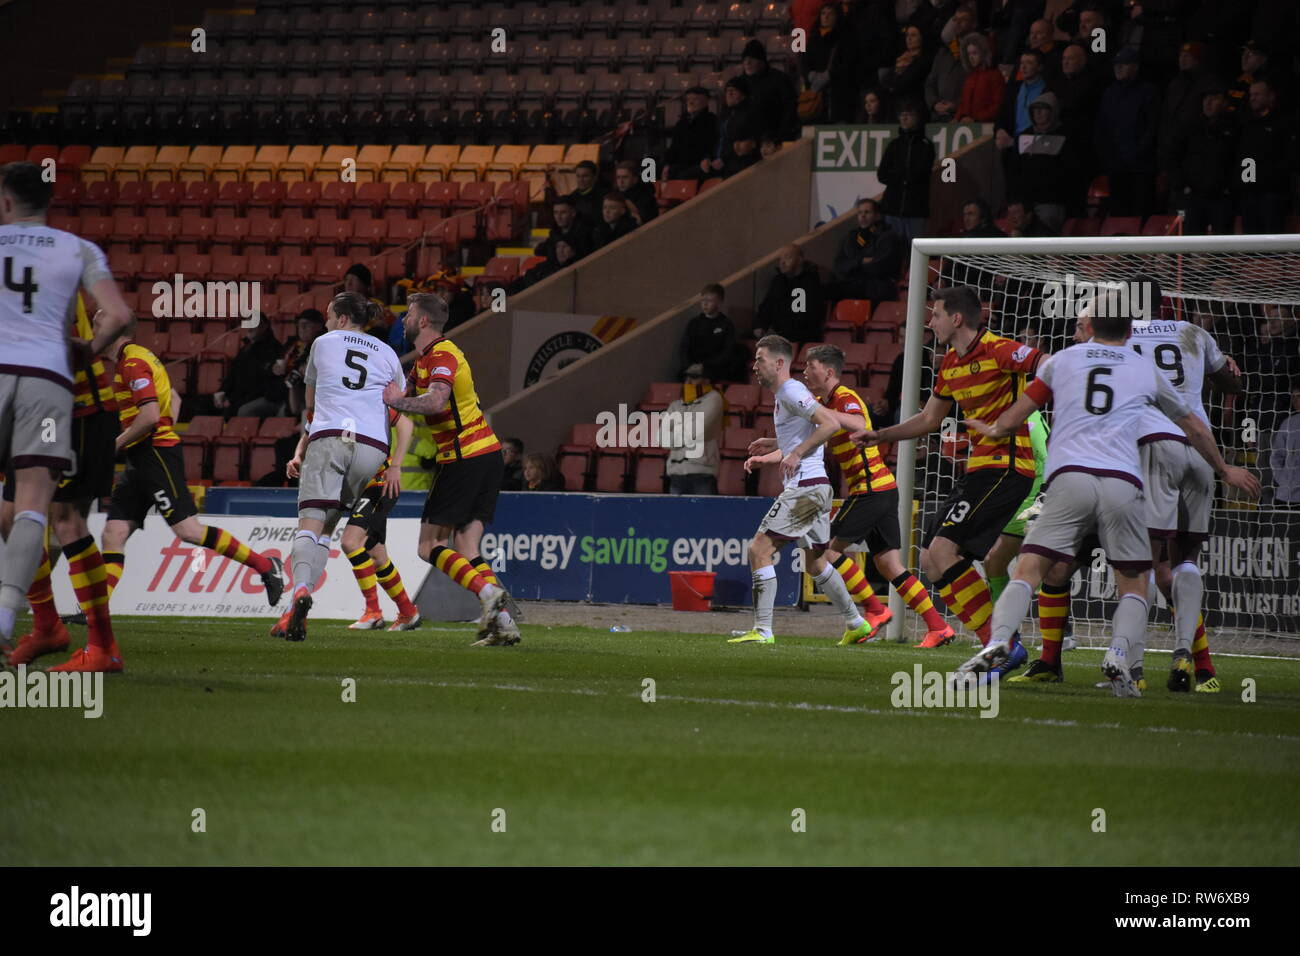 firhill, Maryhill, Glasgow, Scotland 4th march 2019 Heats continue to press into Partick Thistle box Credit: Thomas Porter/Alamy News - Stock Image